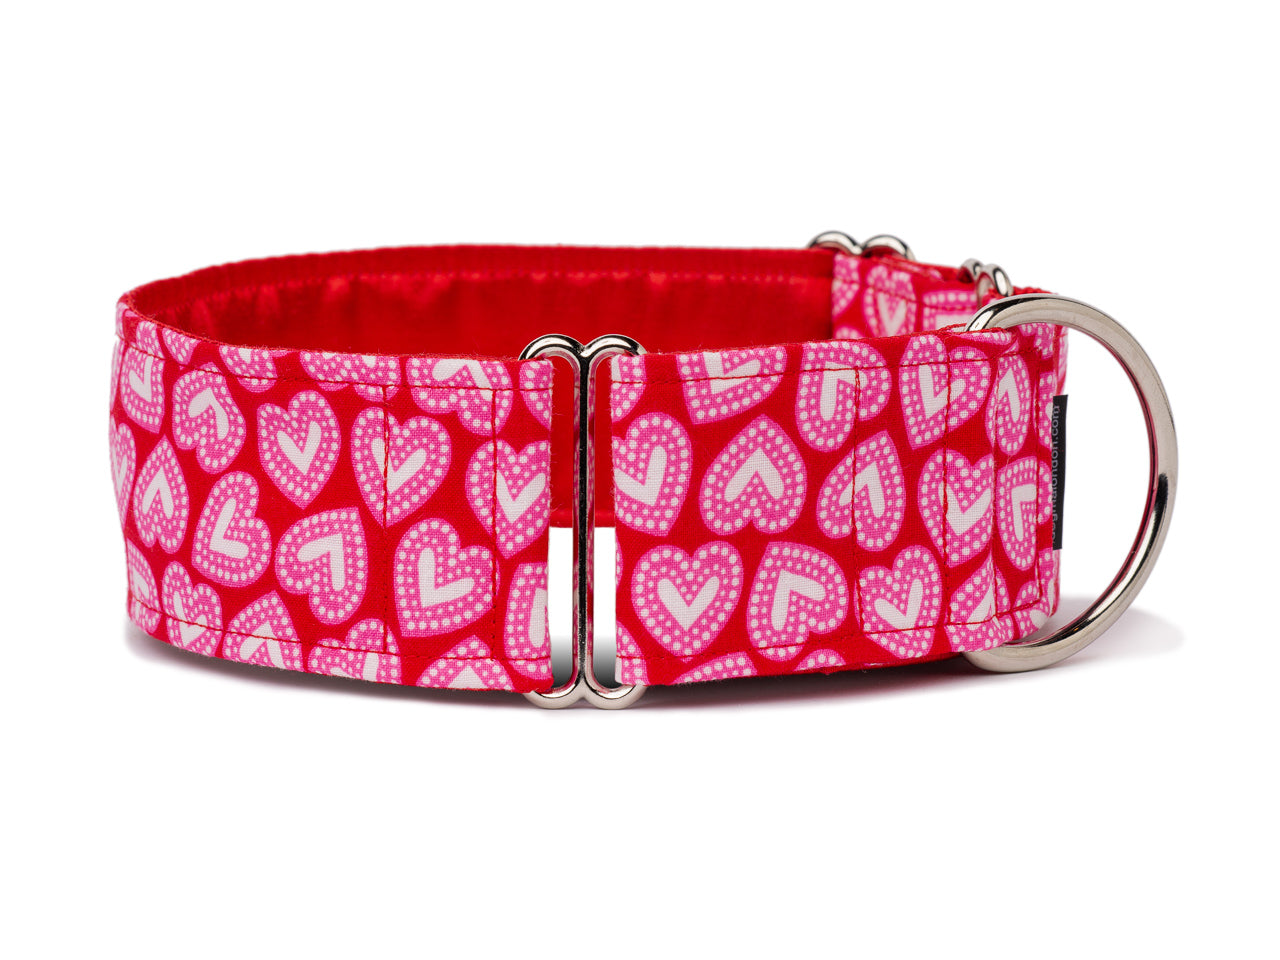 Pretty pink and white hearts on red are perfect for Valentine's Day or any time you want to show your pooch some love!